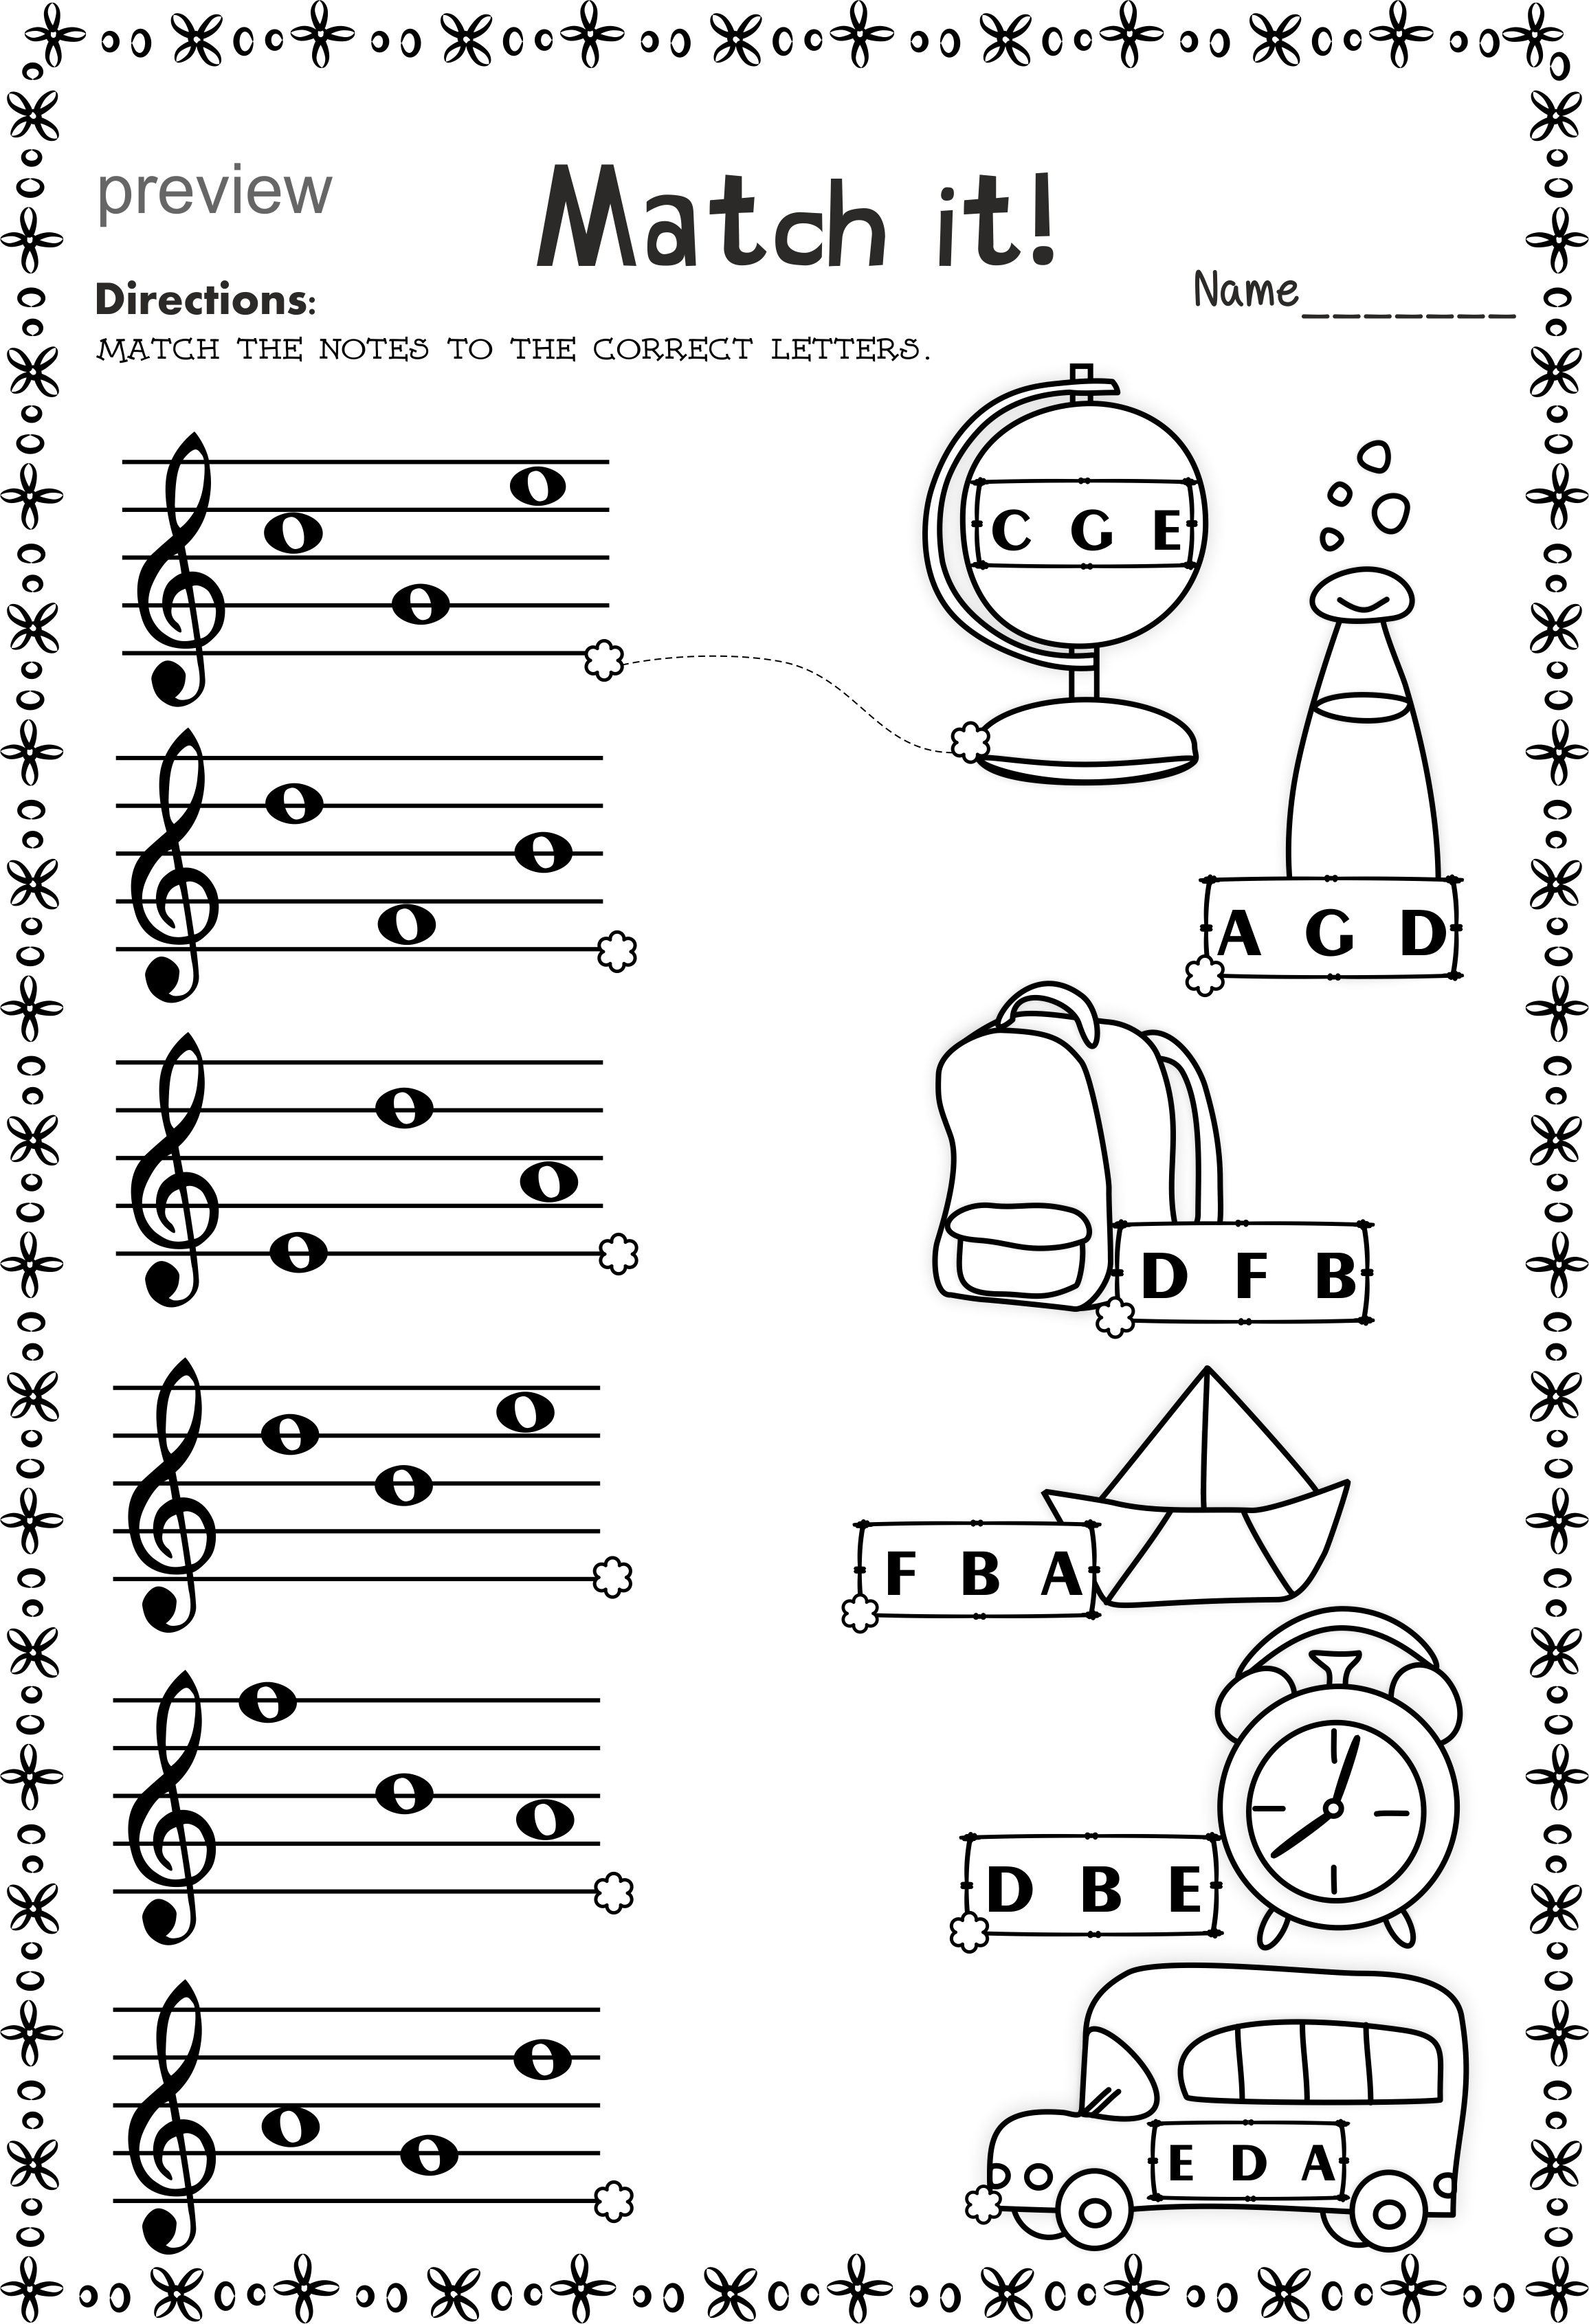 back to school treble clef note naming worksheets pinterest pianos piano lessons and music. Black Bedroom Furniture Sets. Home Design Ideas